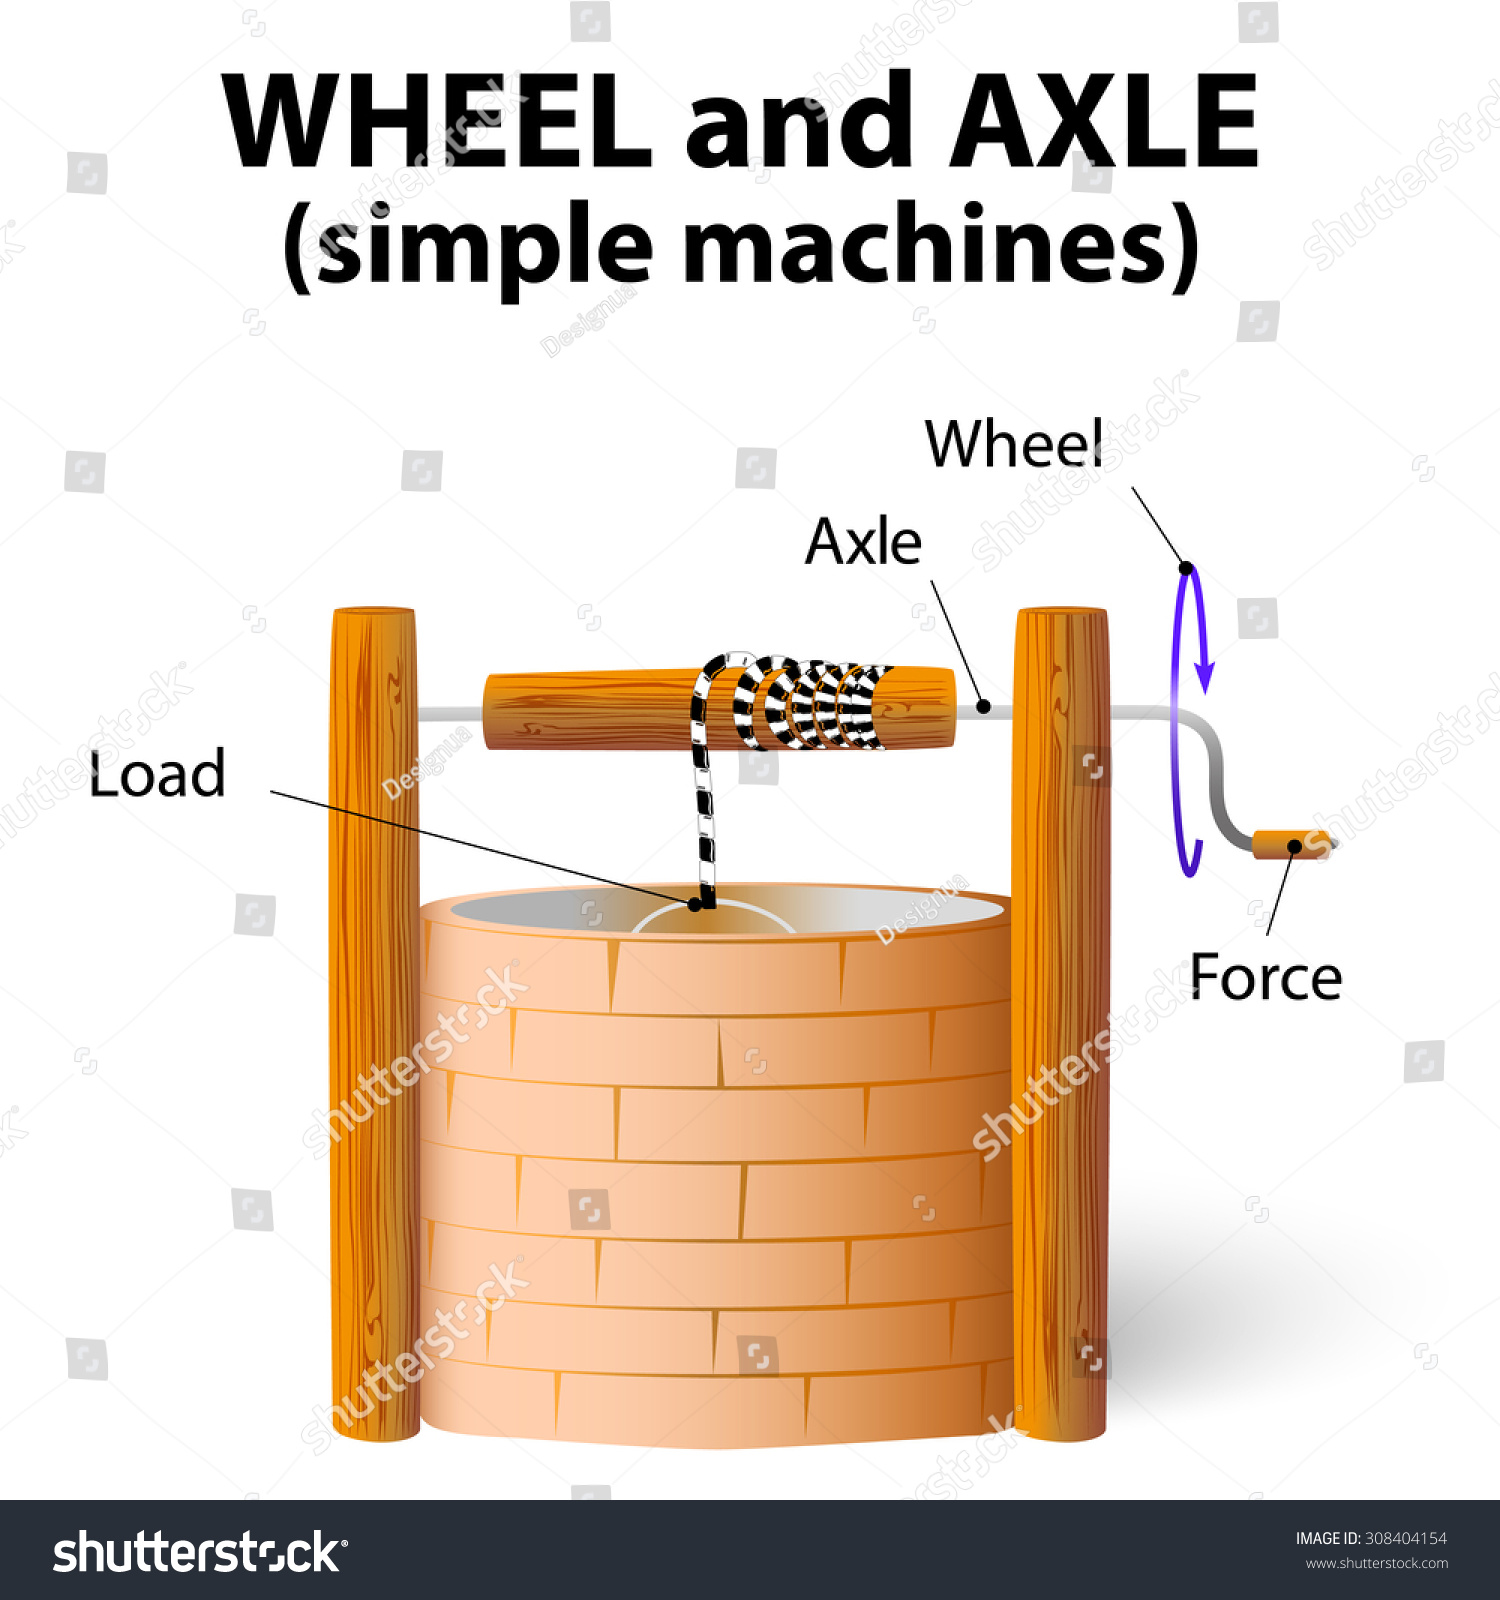 exles of wheel and axle simple machine